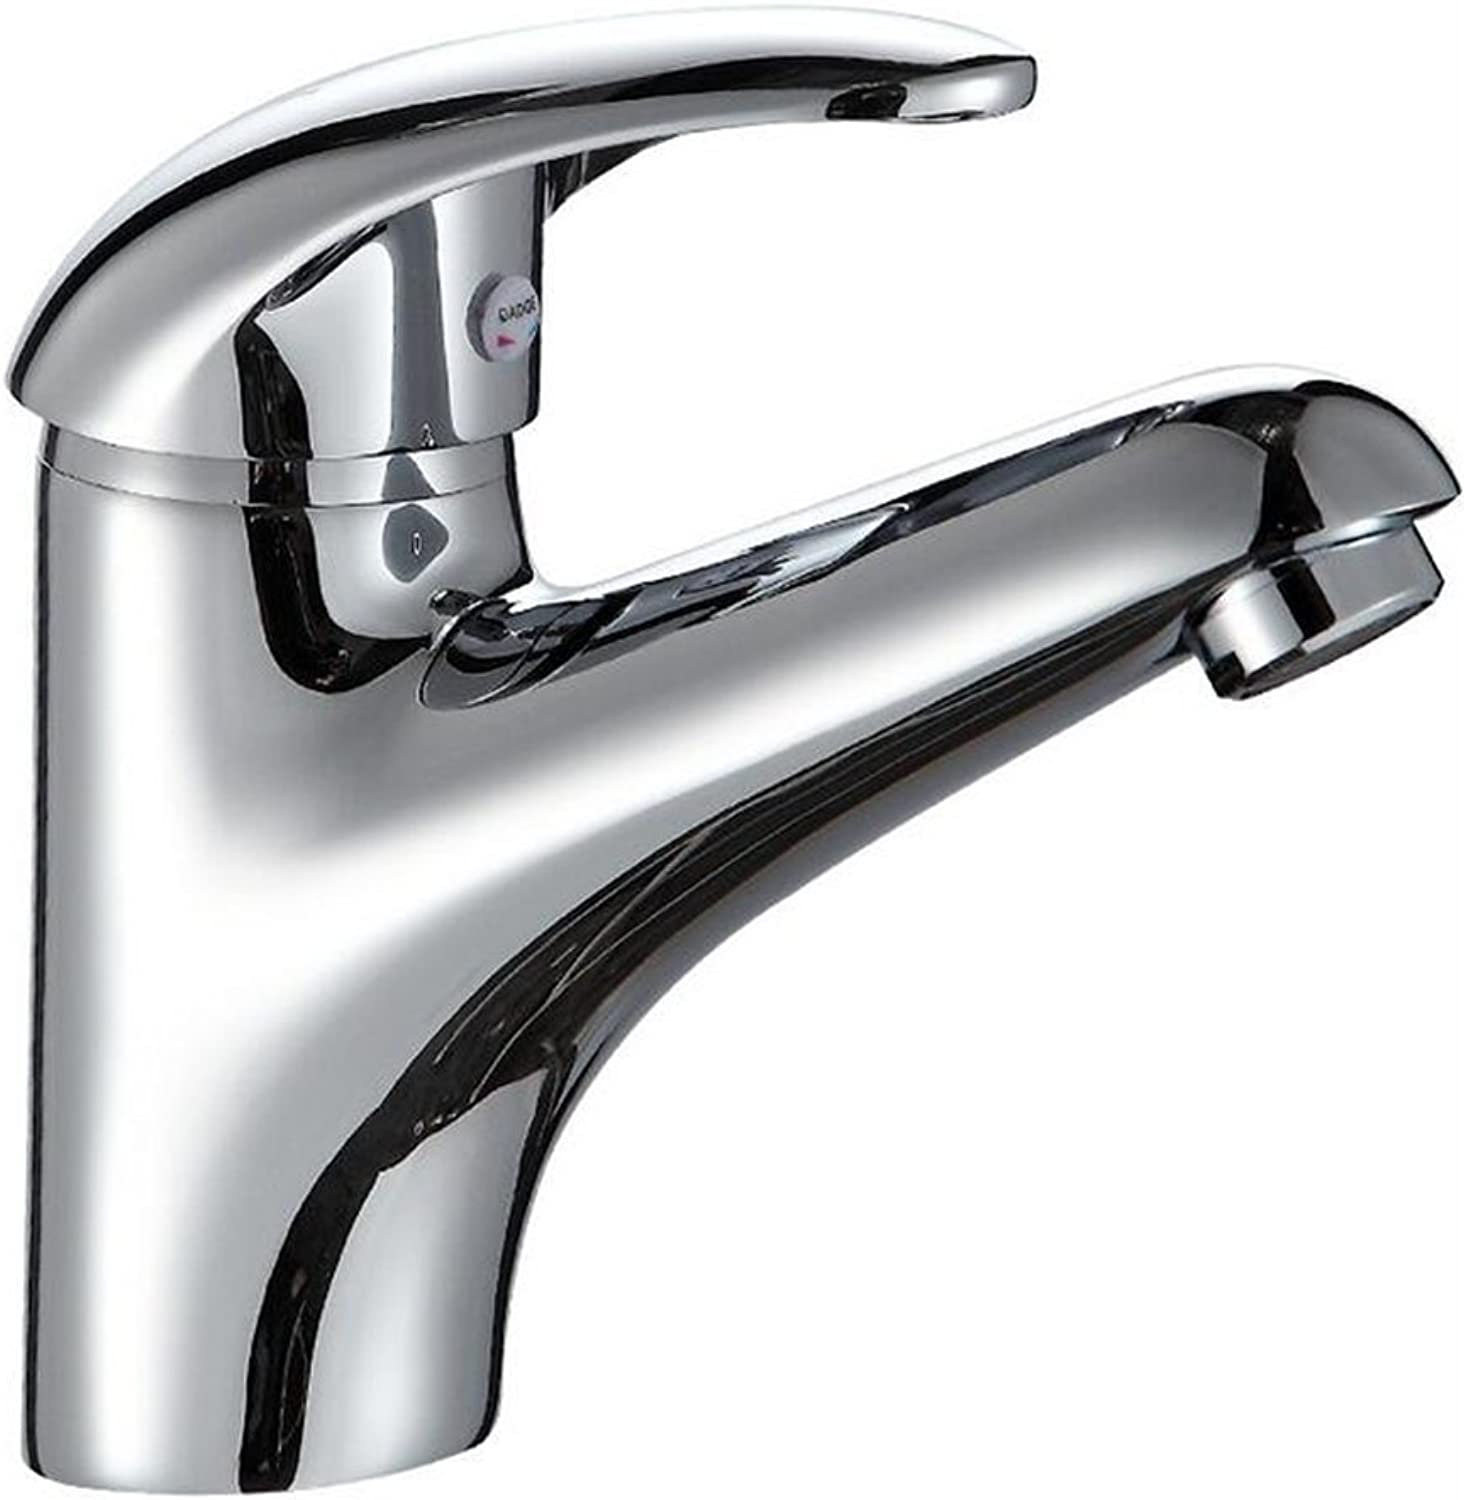 Single Hole Hot And Cold Water Single Hole Bathroom Ceramic Washbasin Basin Tap Faucet Bathroom Sink Taps